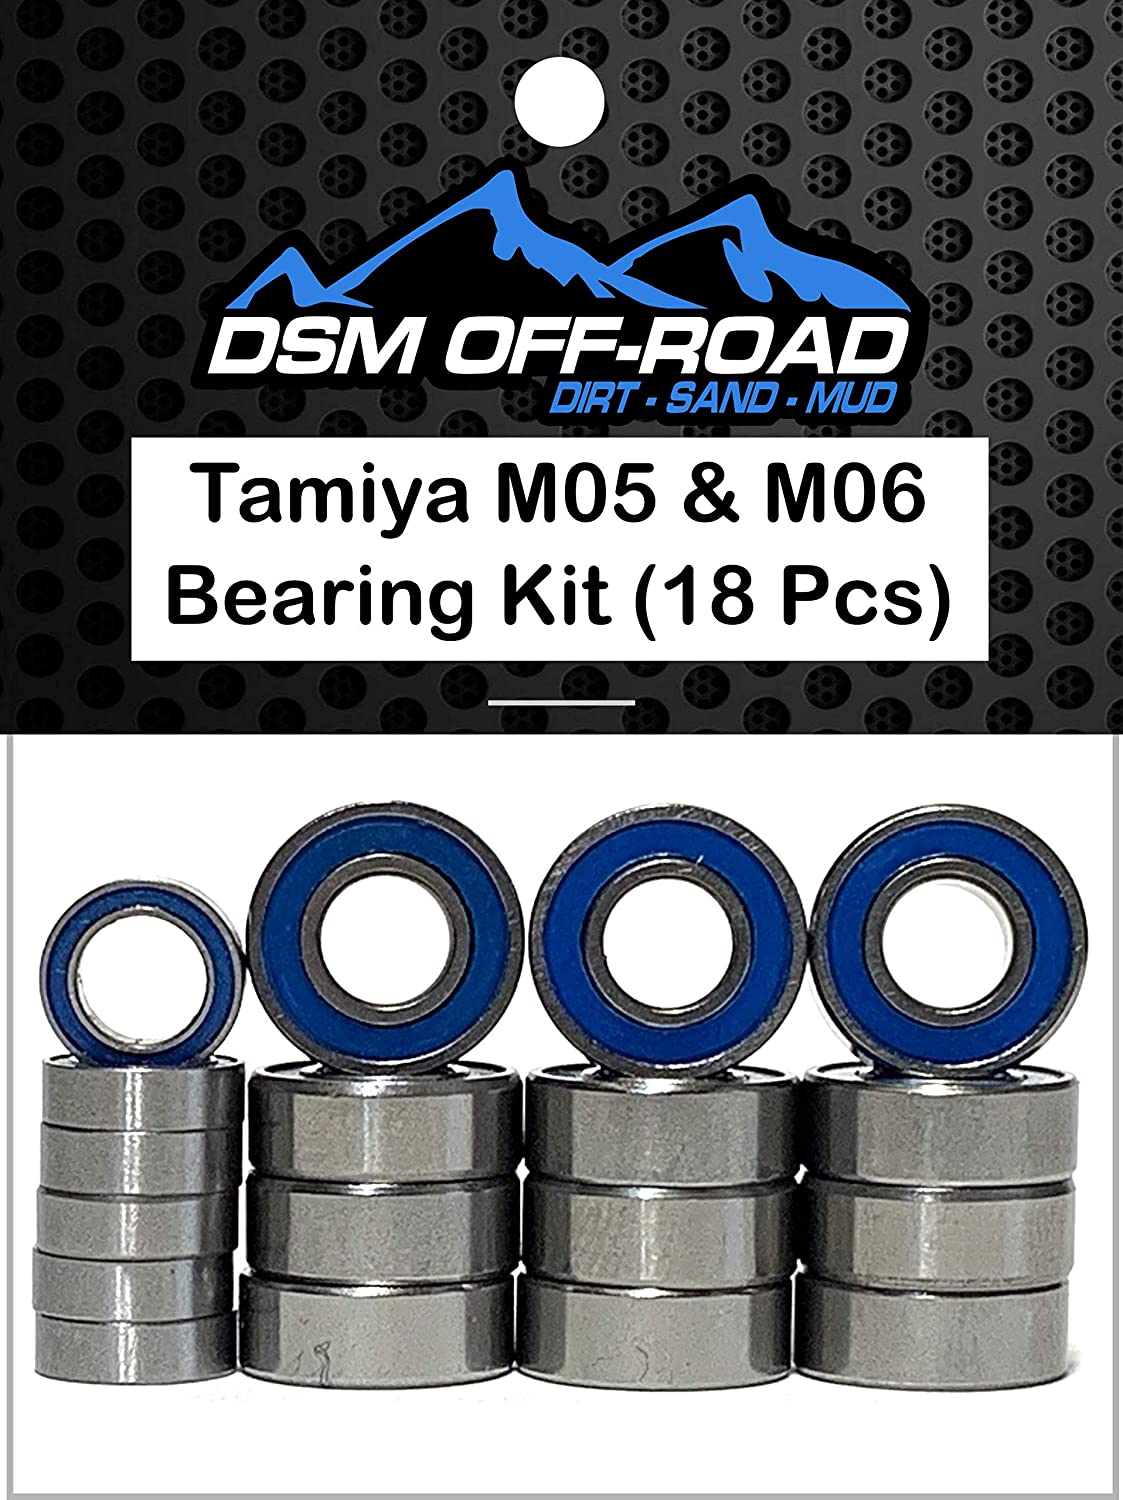 18 Bearings DSM Off-Road Rubber Sealed Bearing Kit for Tamiya M05 and M06 Chassis